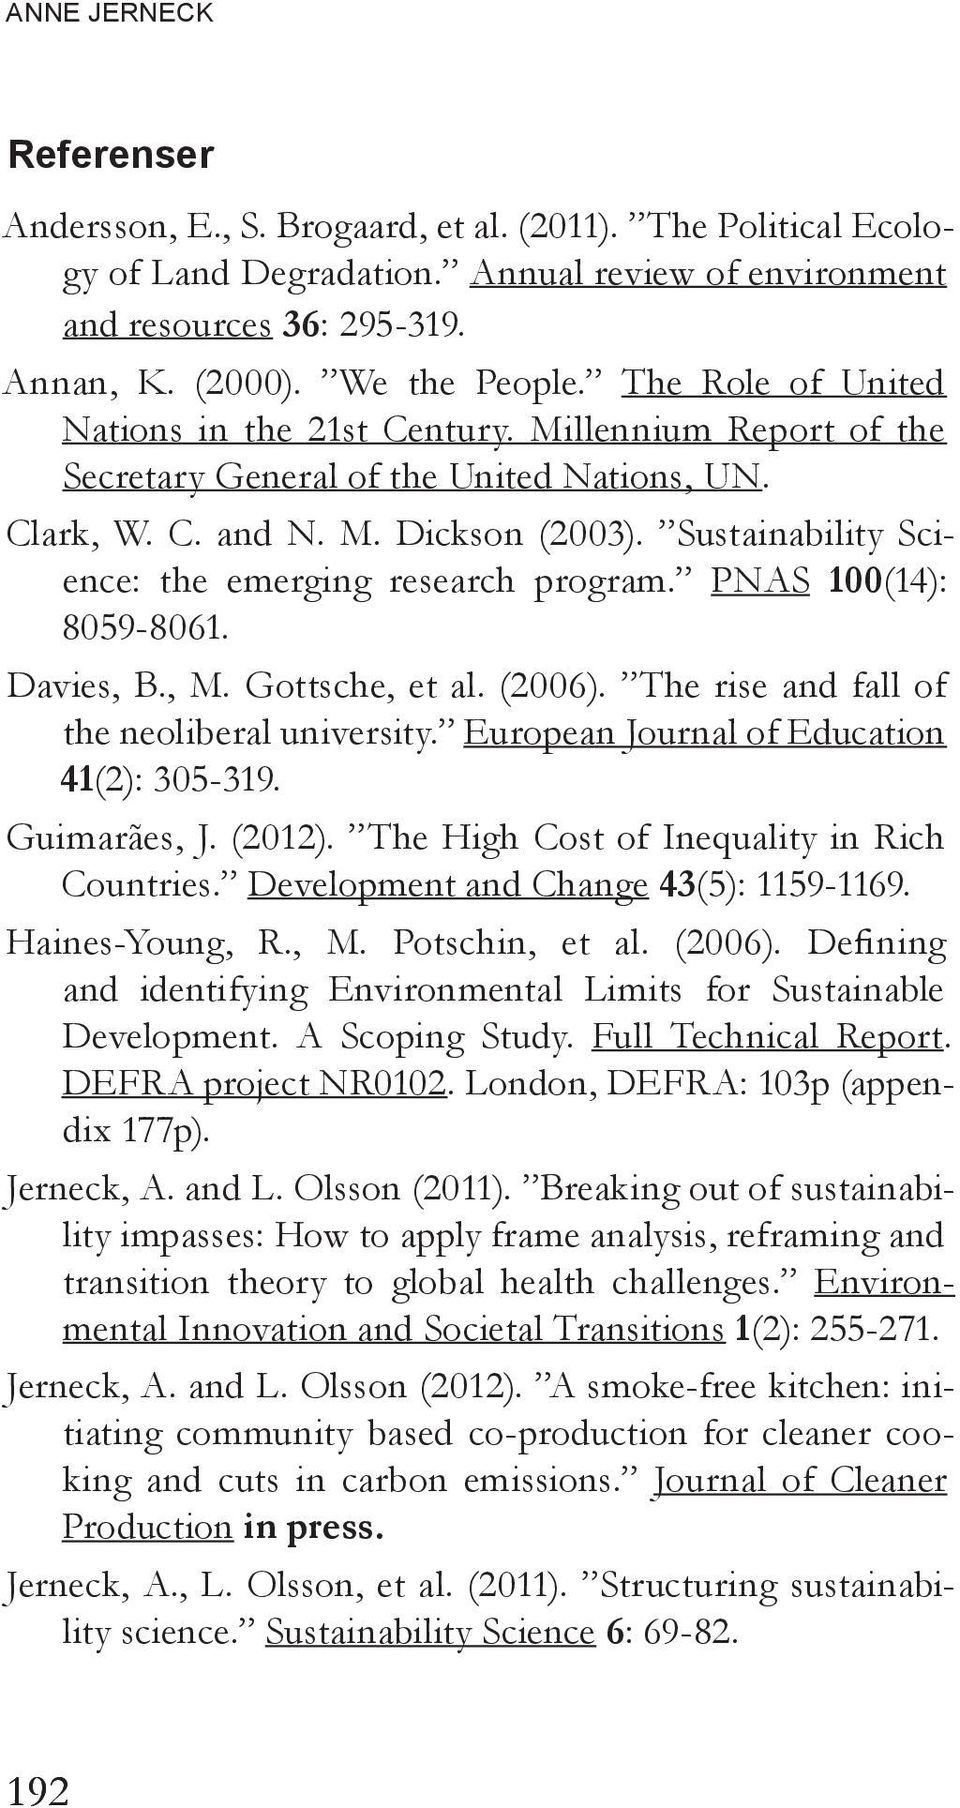 Sustainability Science: the emerging research program. PNAS 100(14): 8059-8061. Davies, B., M. Gottsche, et al. (2006). The rise and fall of the neoliberal university.